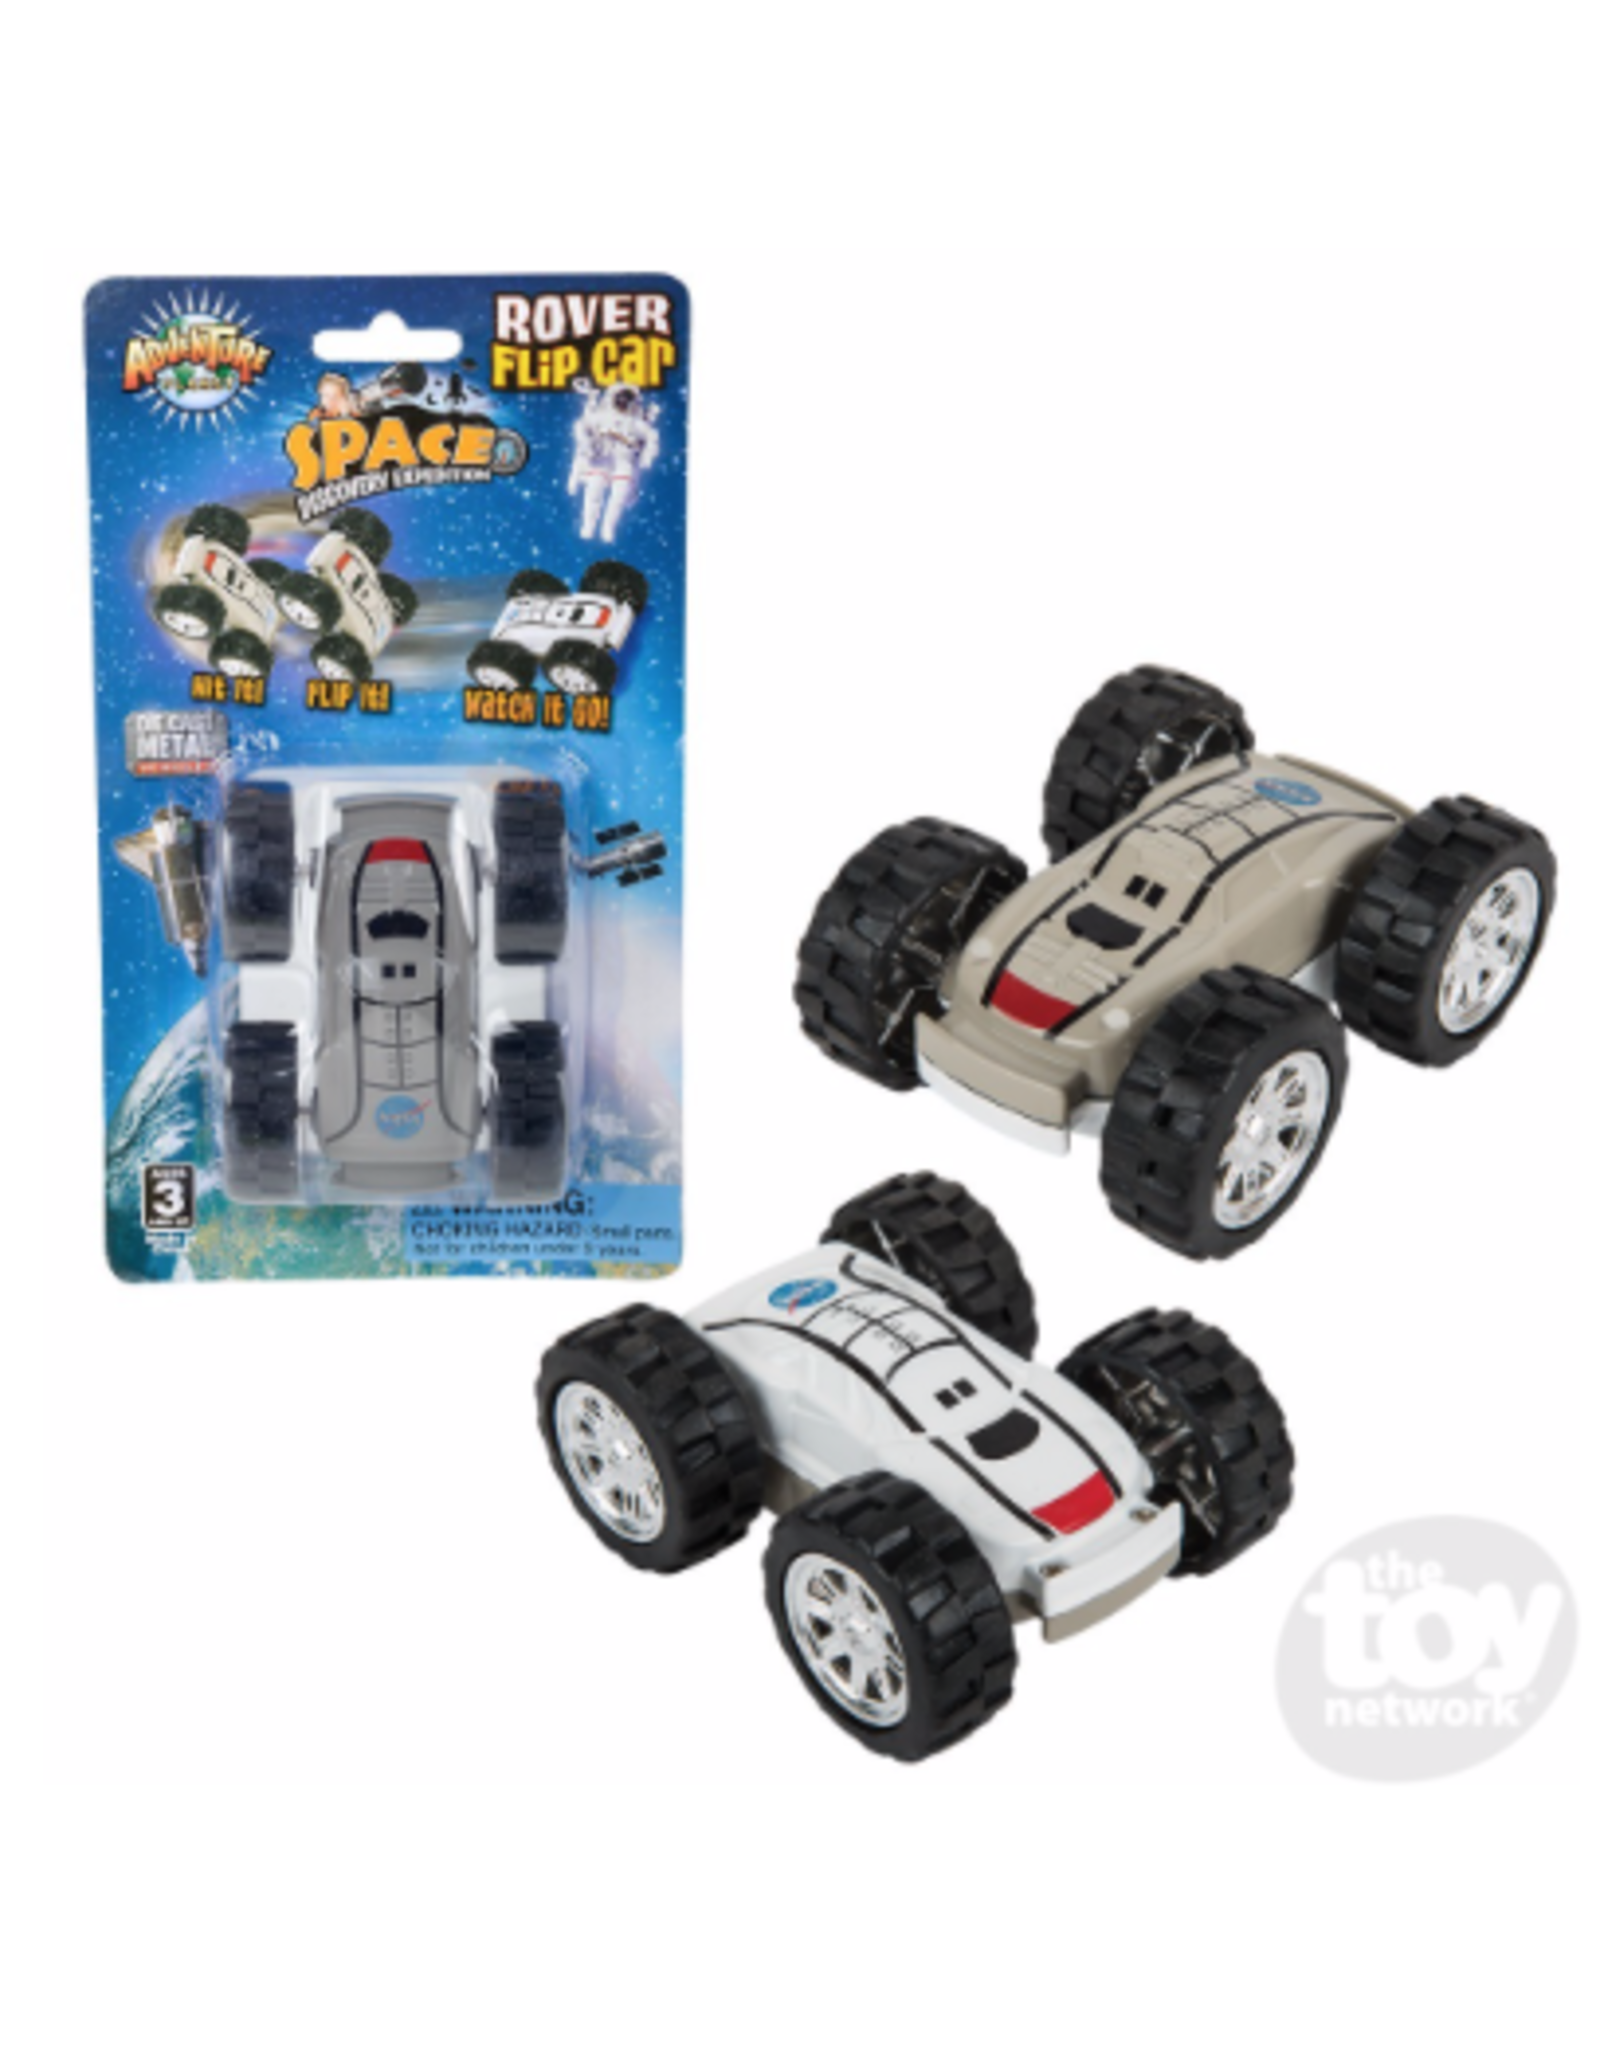 The Toy Network Space Discovery Rover Flip Car